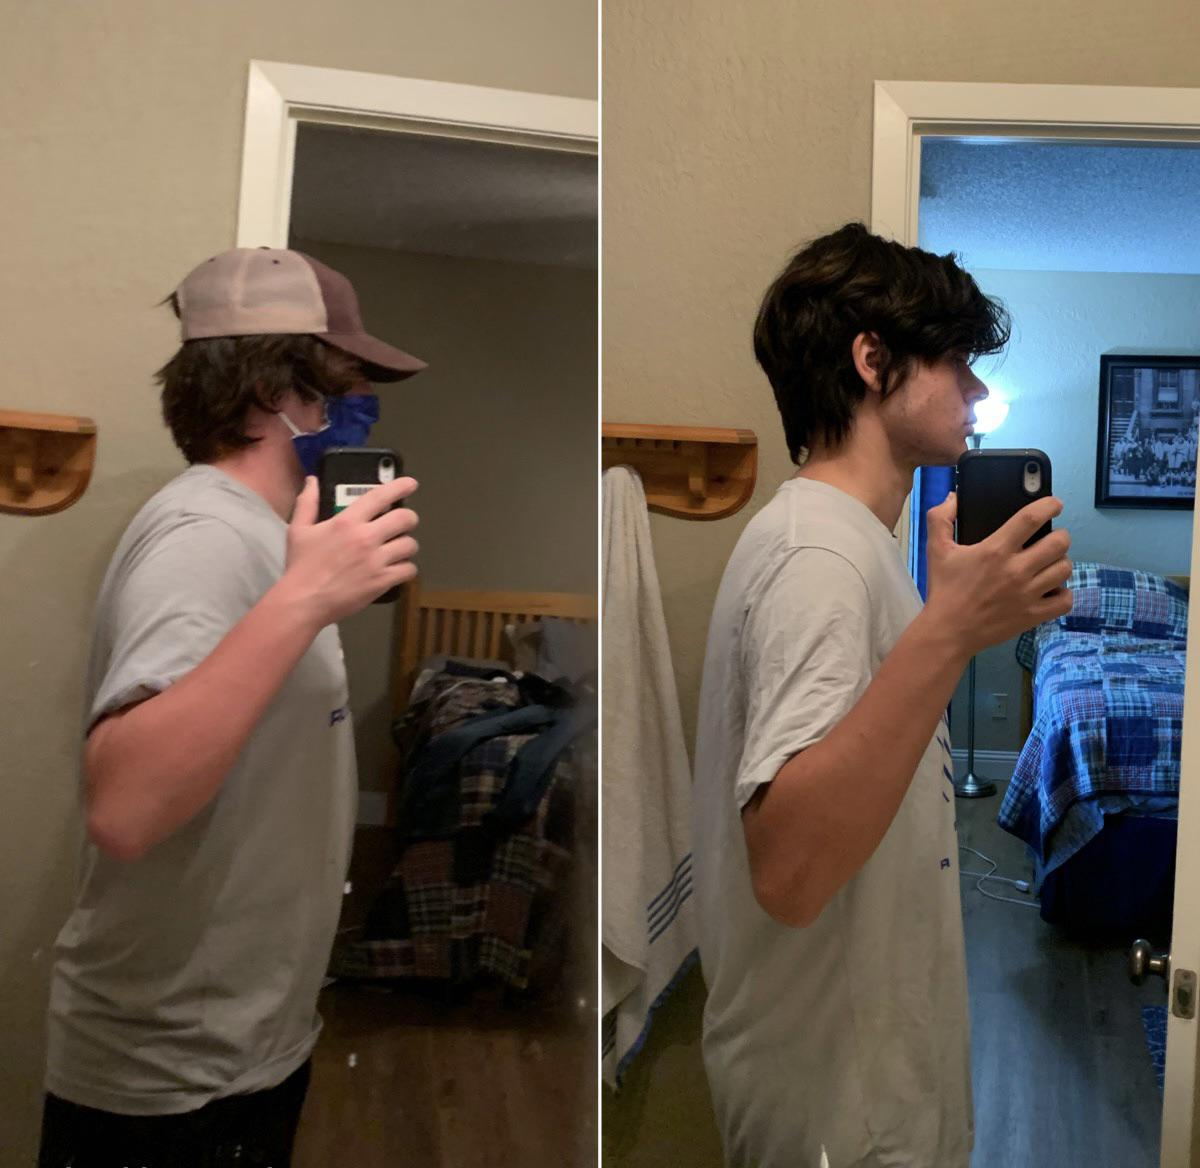 5 foot 11 Male 10 lbs Weight Loss Before and After 190 lbs to 180 lbs